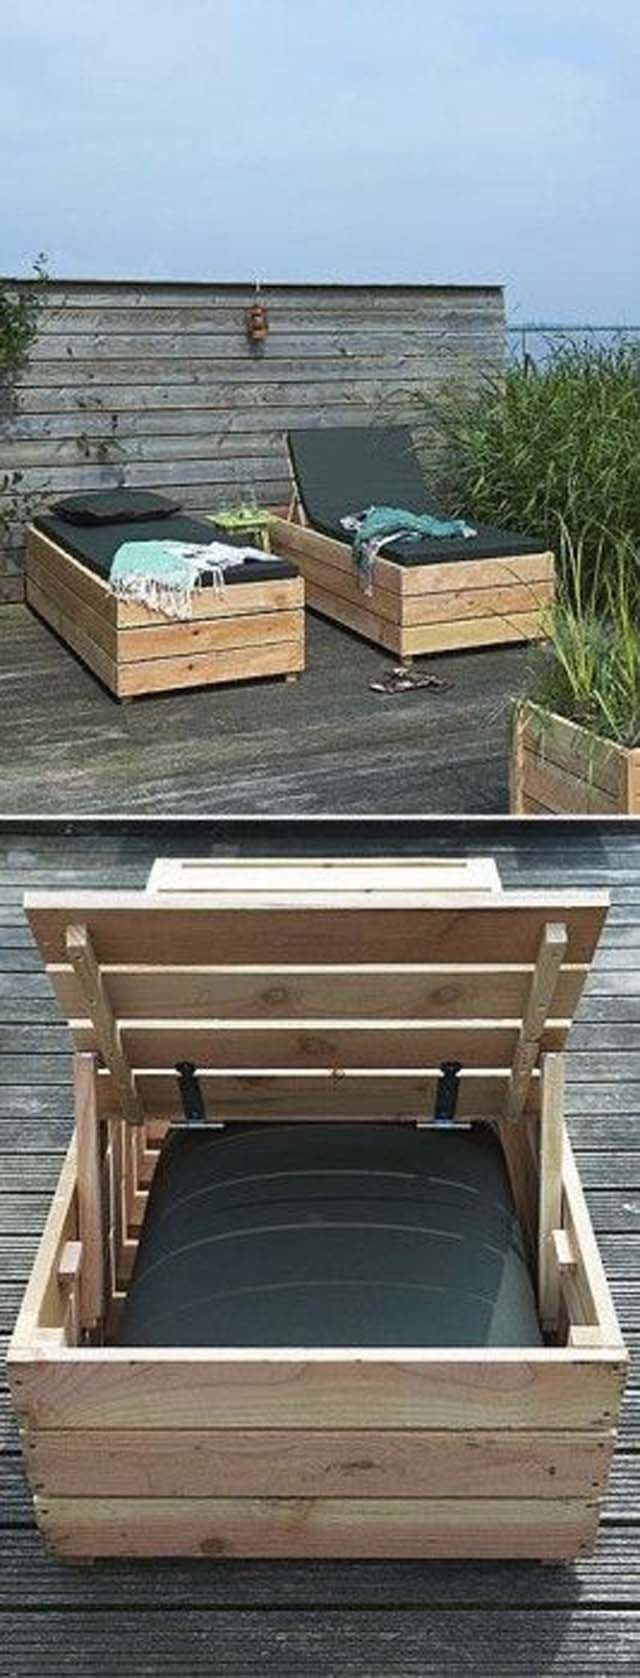 Fun Outdoor Things That Will Make Your Summer Awesome 31 Pics 1 Gif